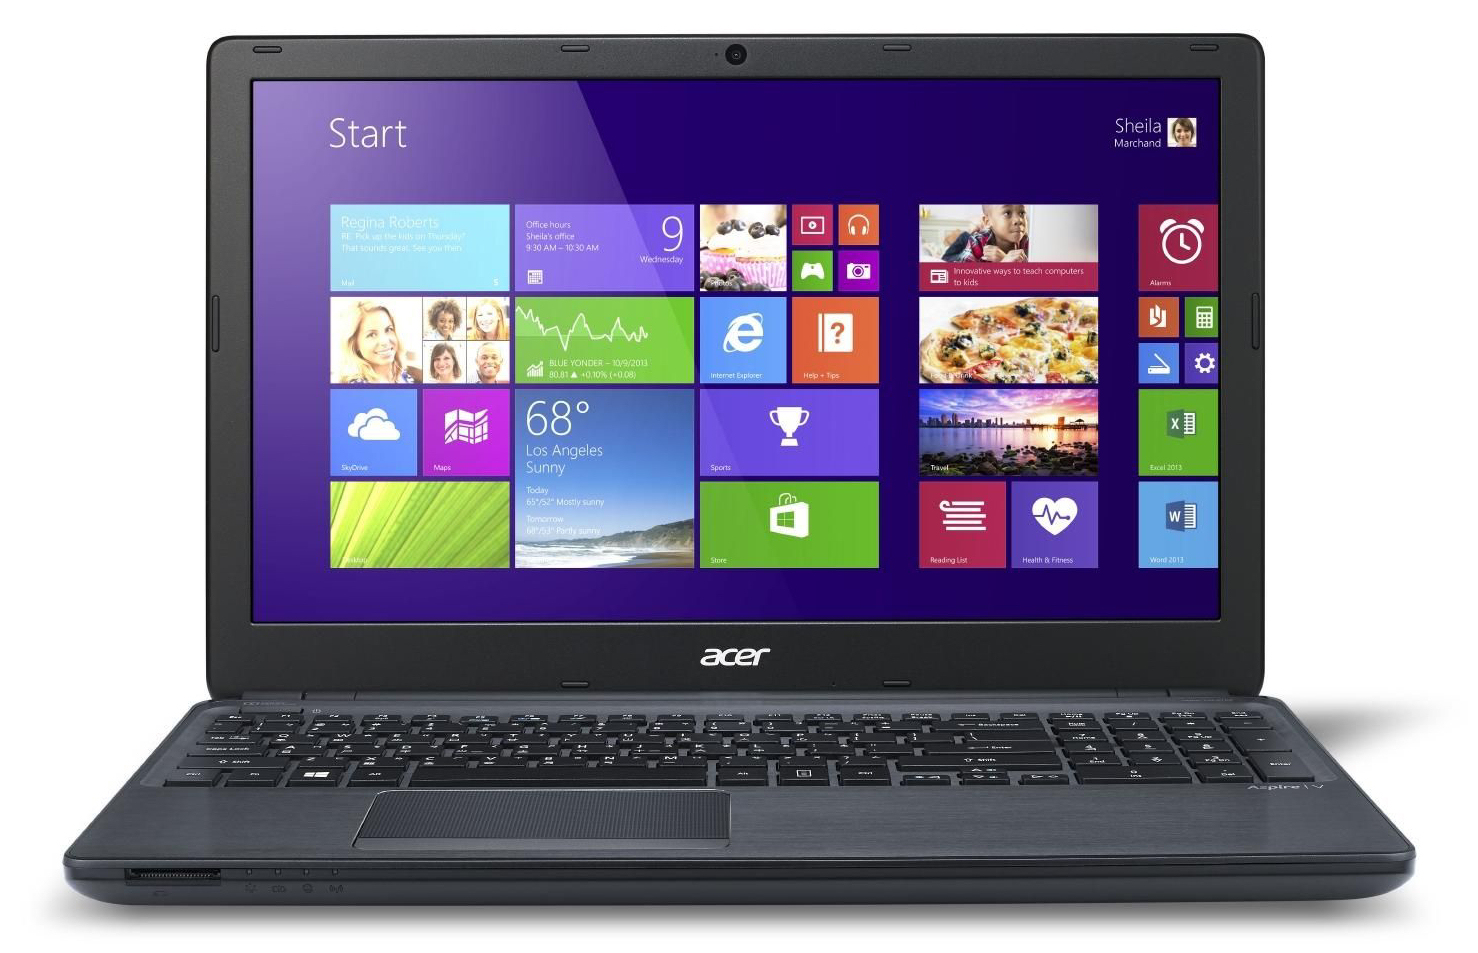 ACER ASPIRE V5-572 BROADCOM BLUETOOTH DRIVER FOR WINDOWS 10